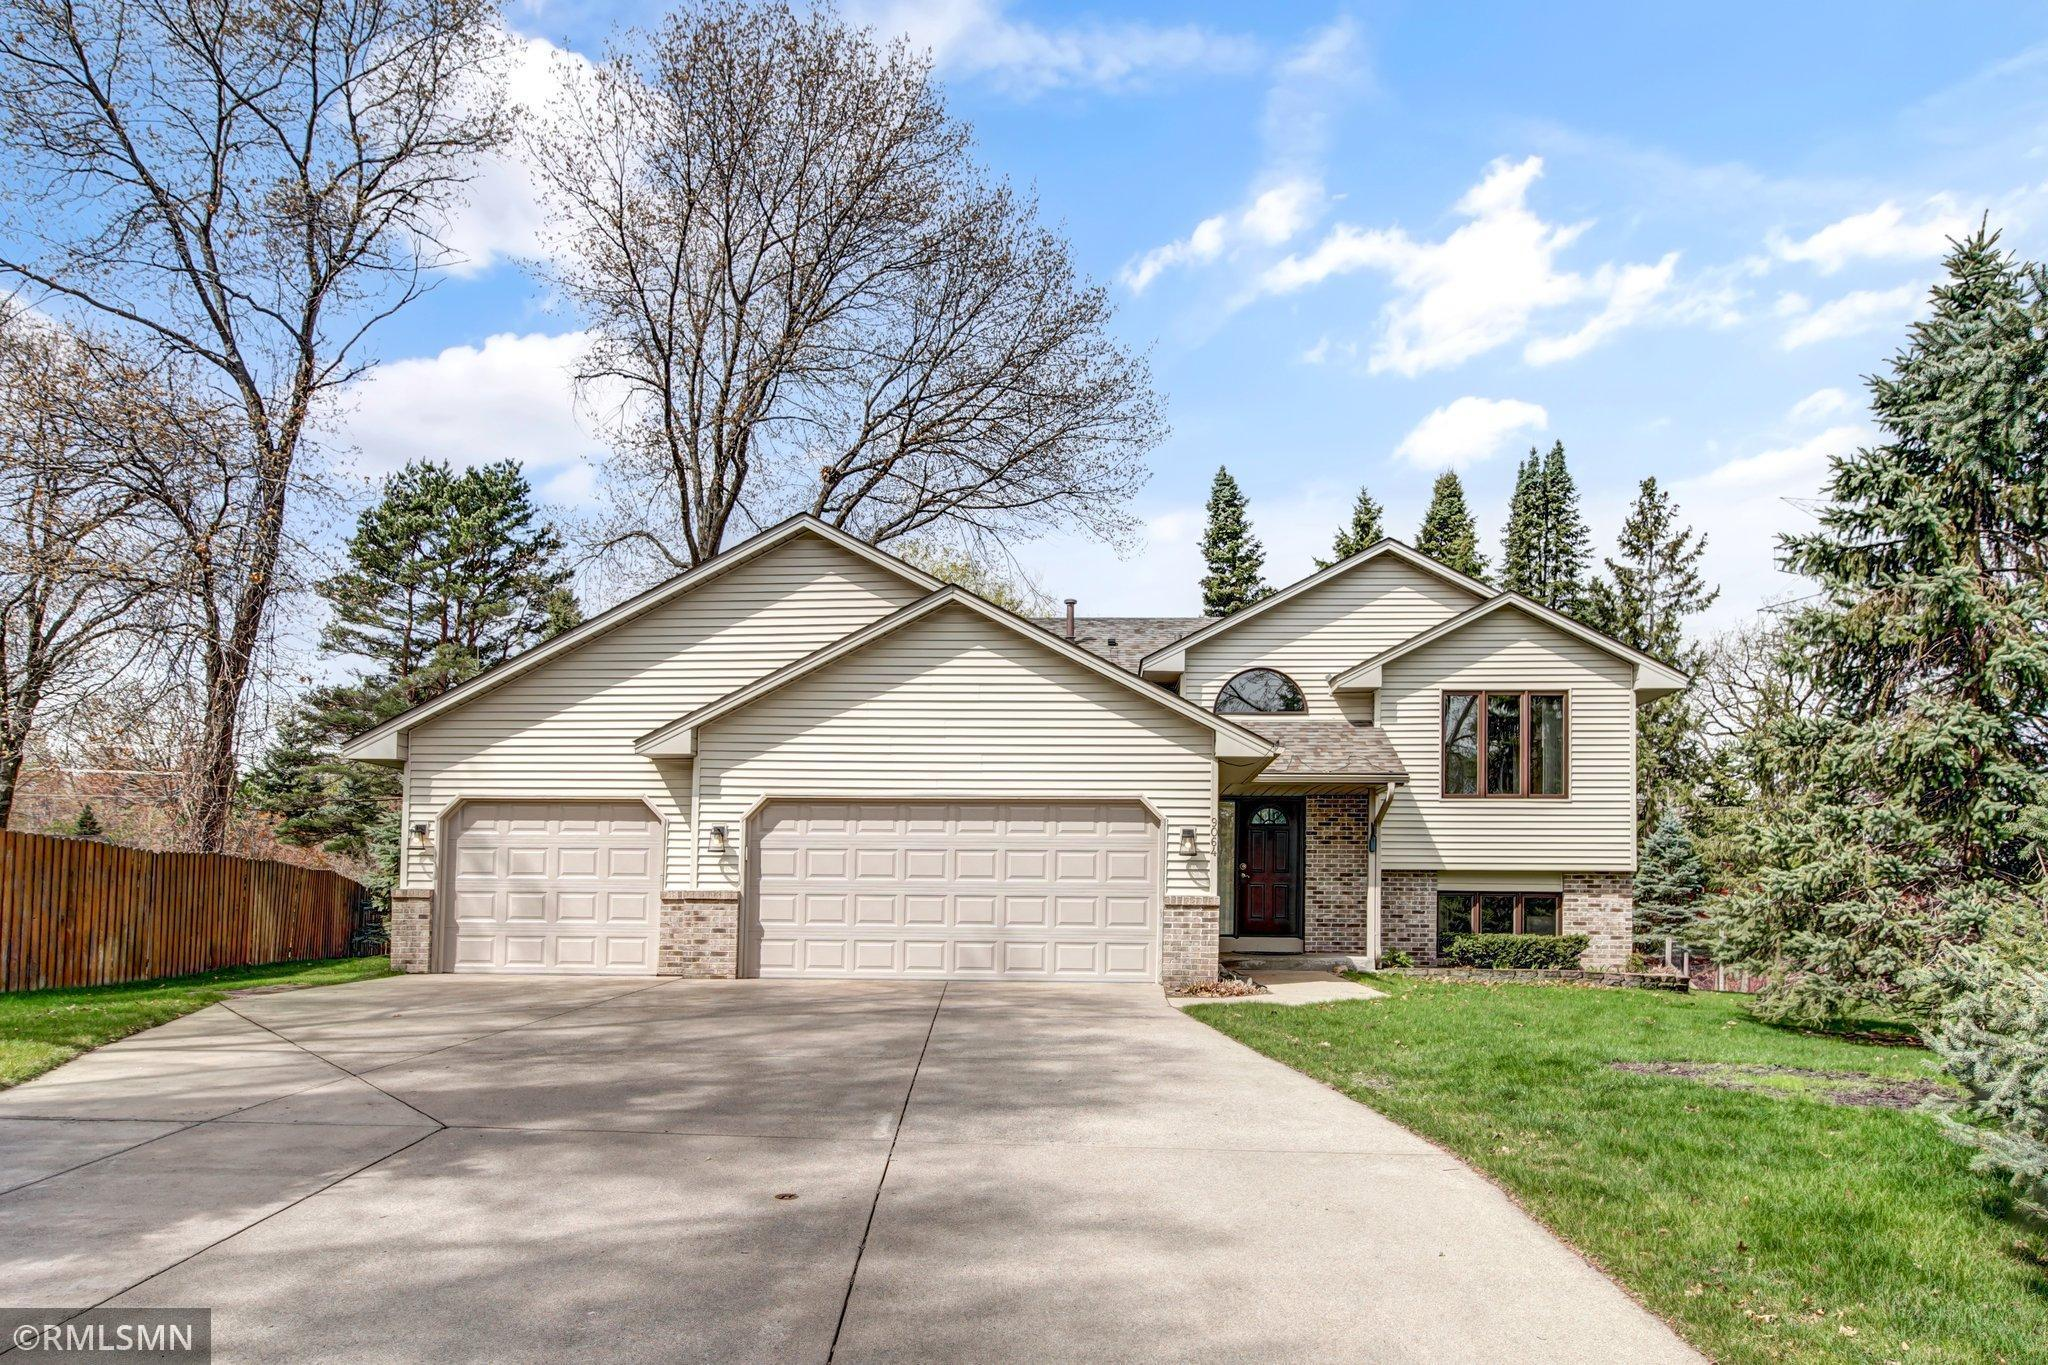 9064 Norway Street Nw, Coon Rapids MN 55433 - Photo 1